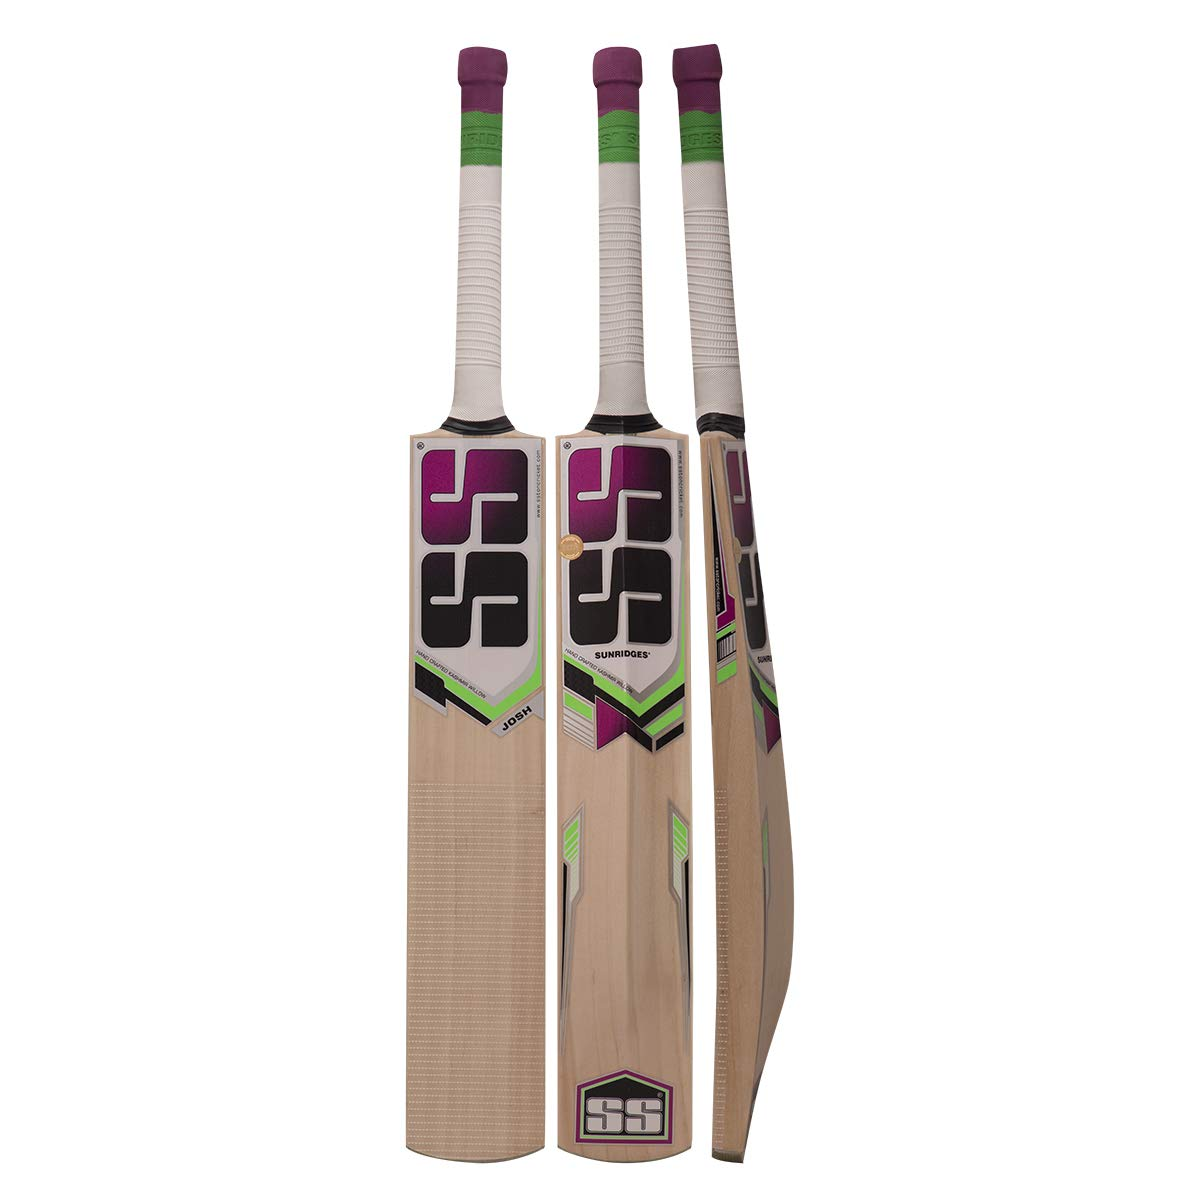 SS Josh Kashmir Willow Cricket Bat